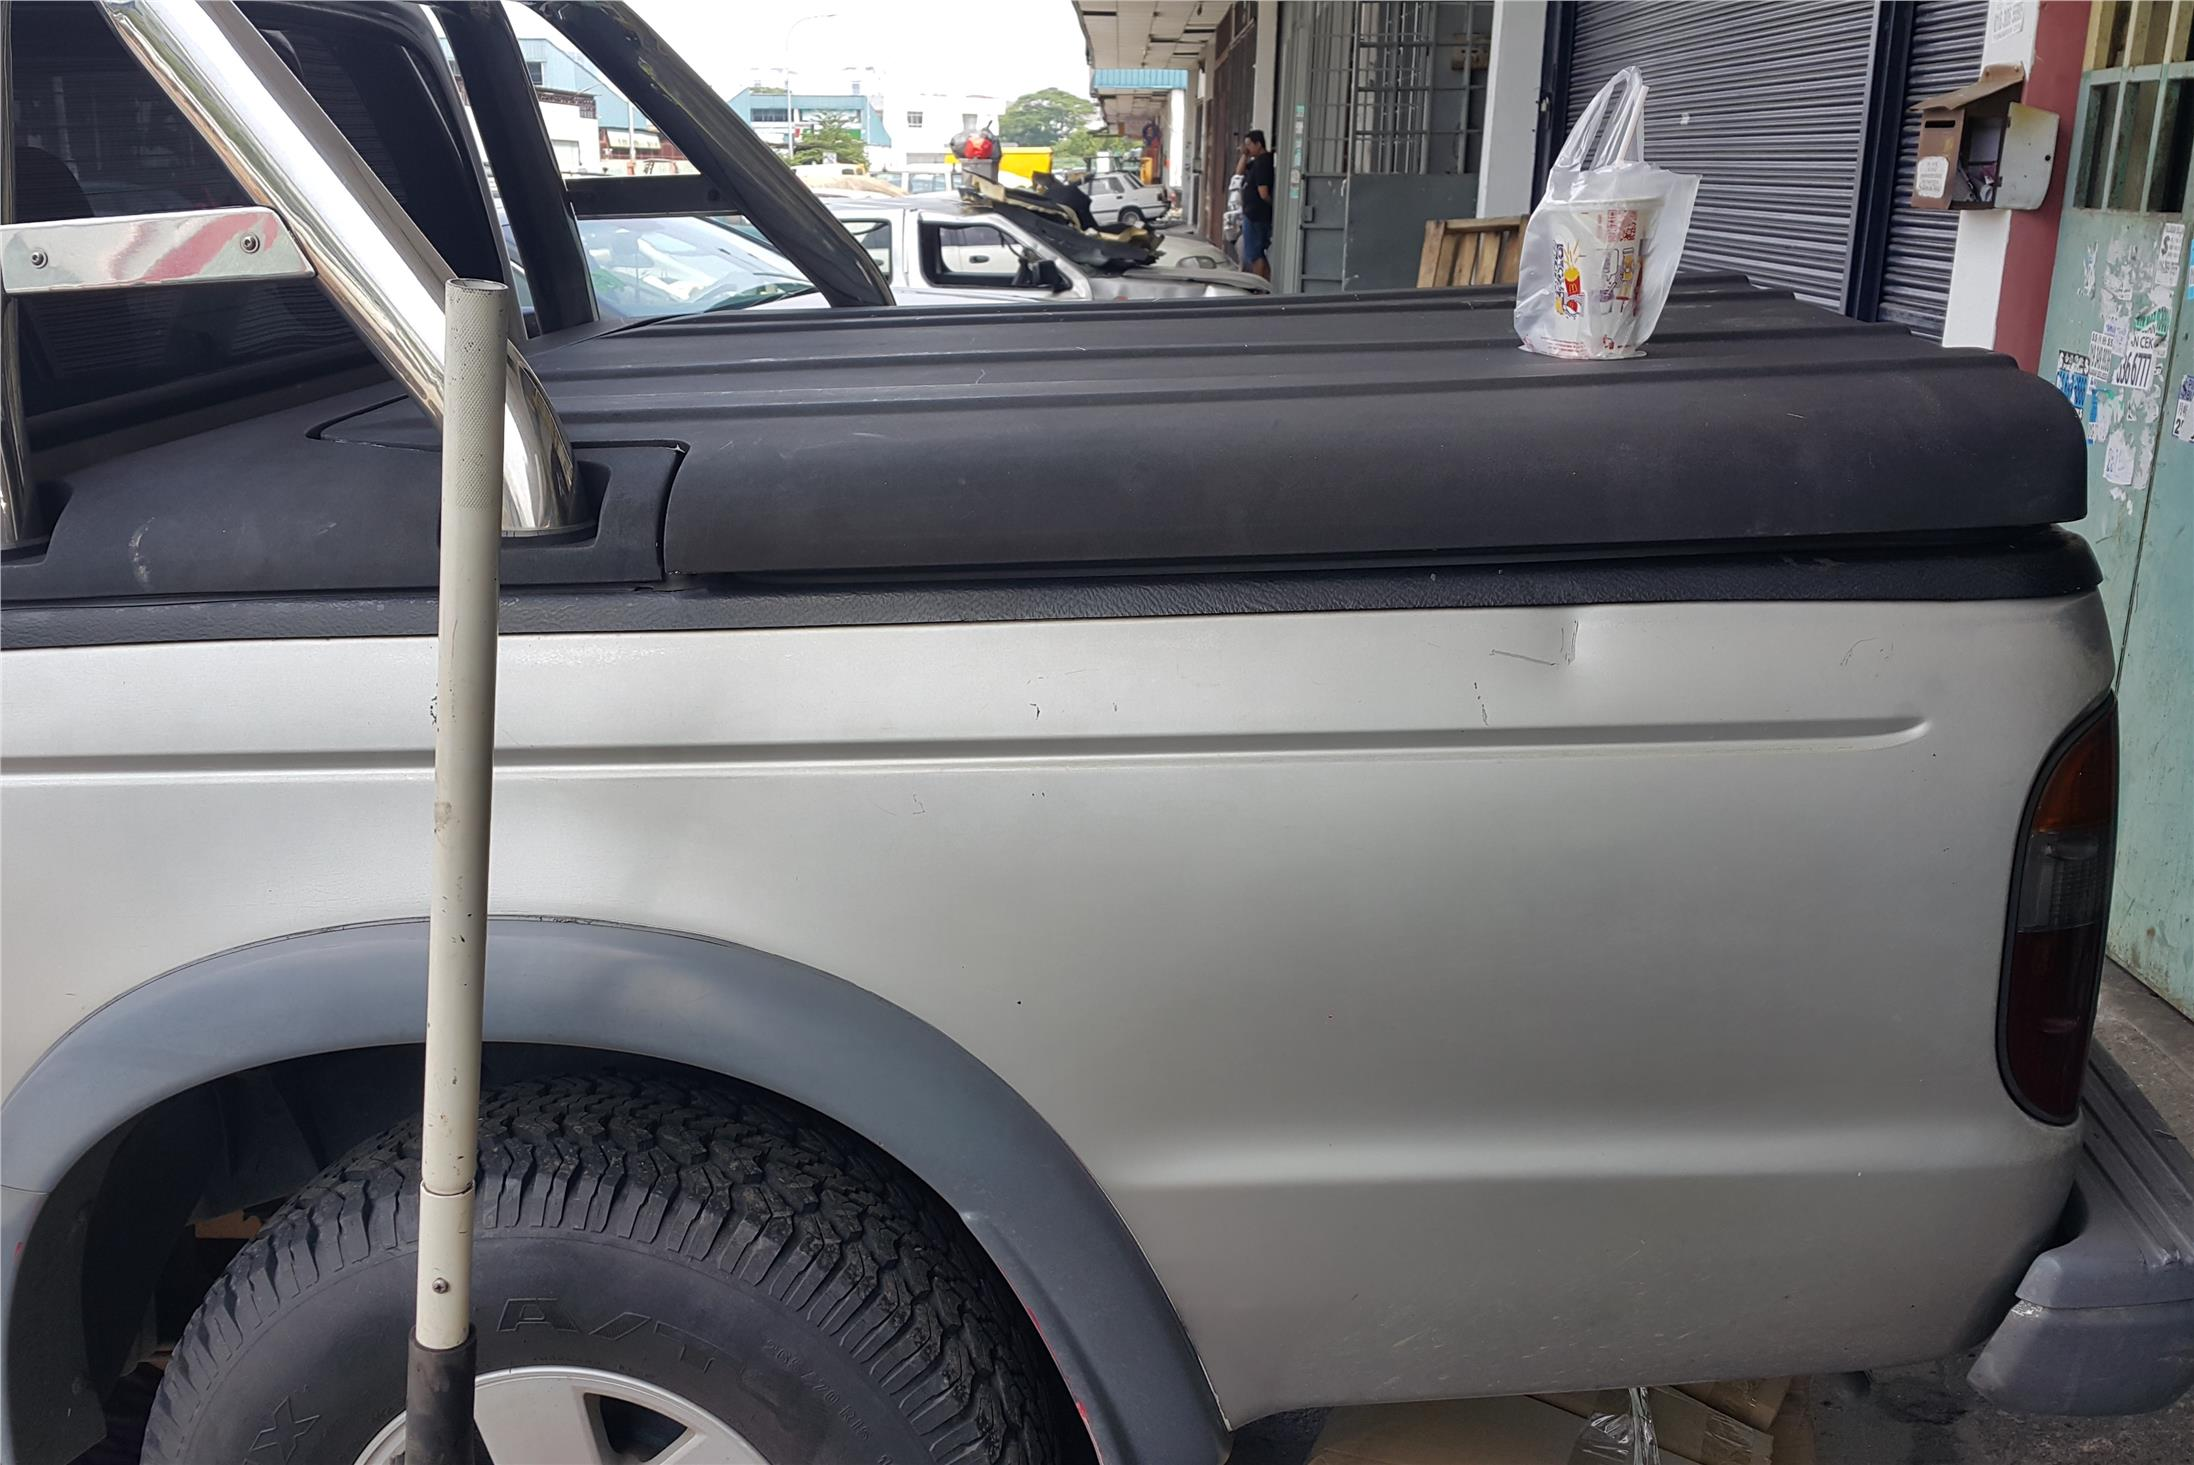 Ford Ranger 4×4 Rear Cabin